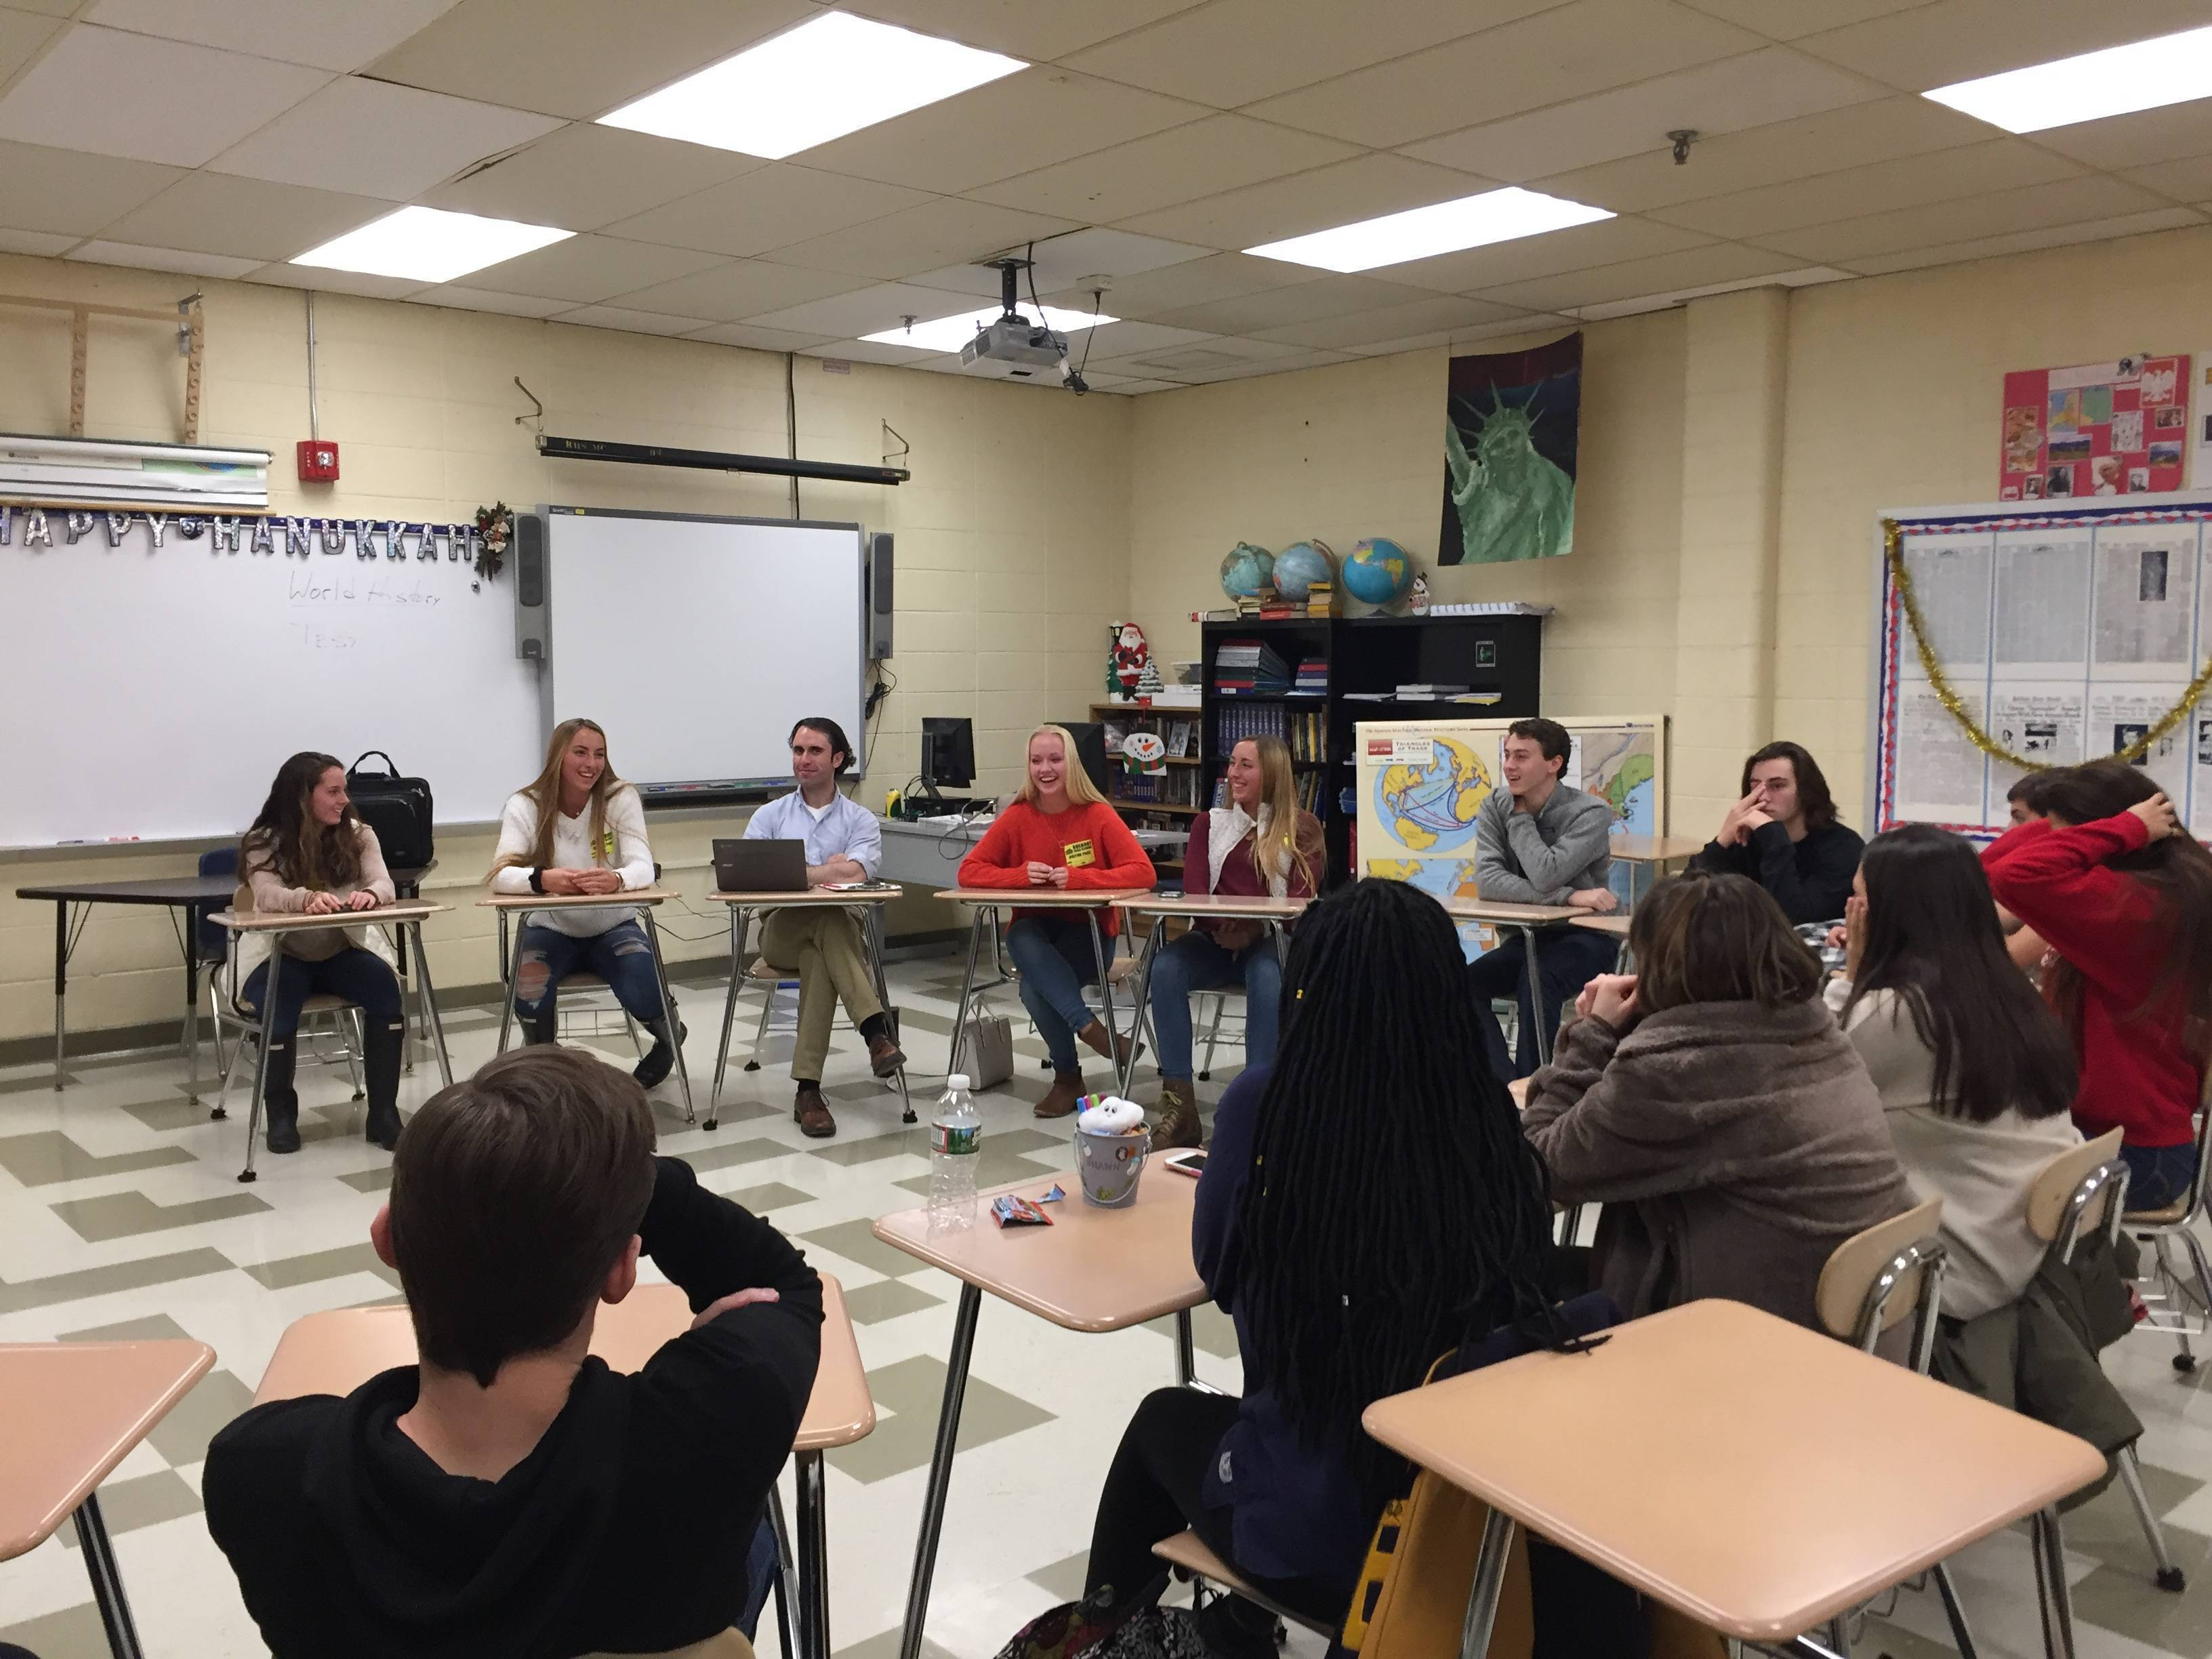 4edd373b232f73f8ee3c_7c62c92258ea489c9734_RHS_Grad_Panel_Discussion_with_McMichaels_Class.JPG